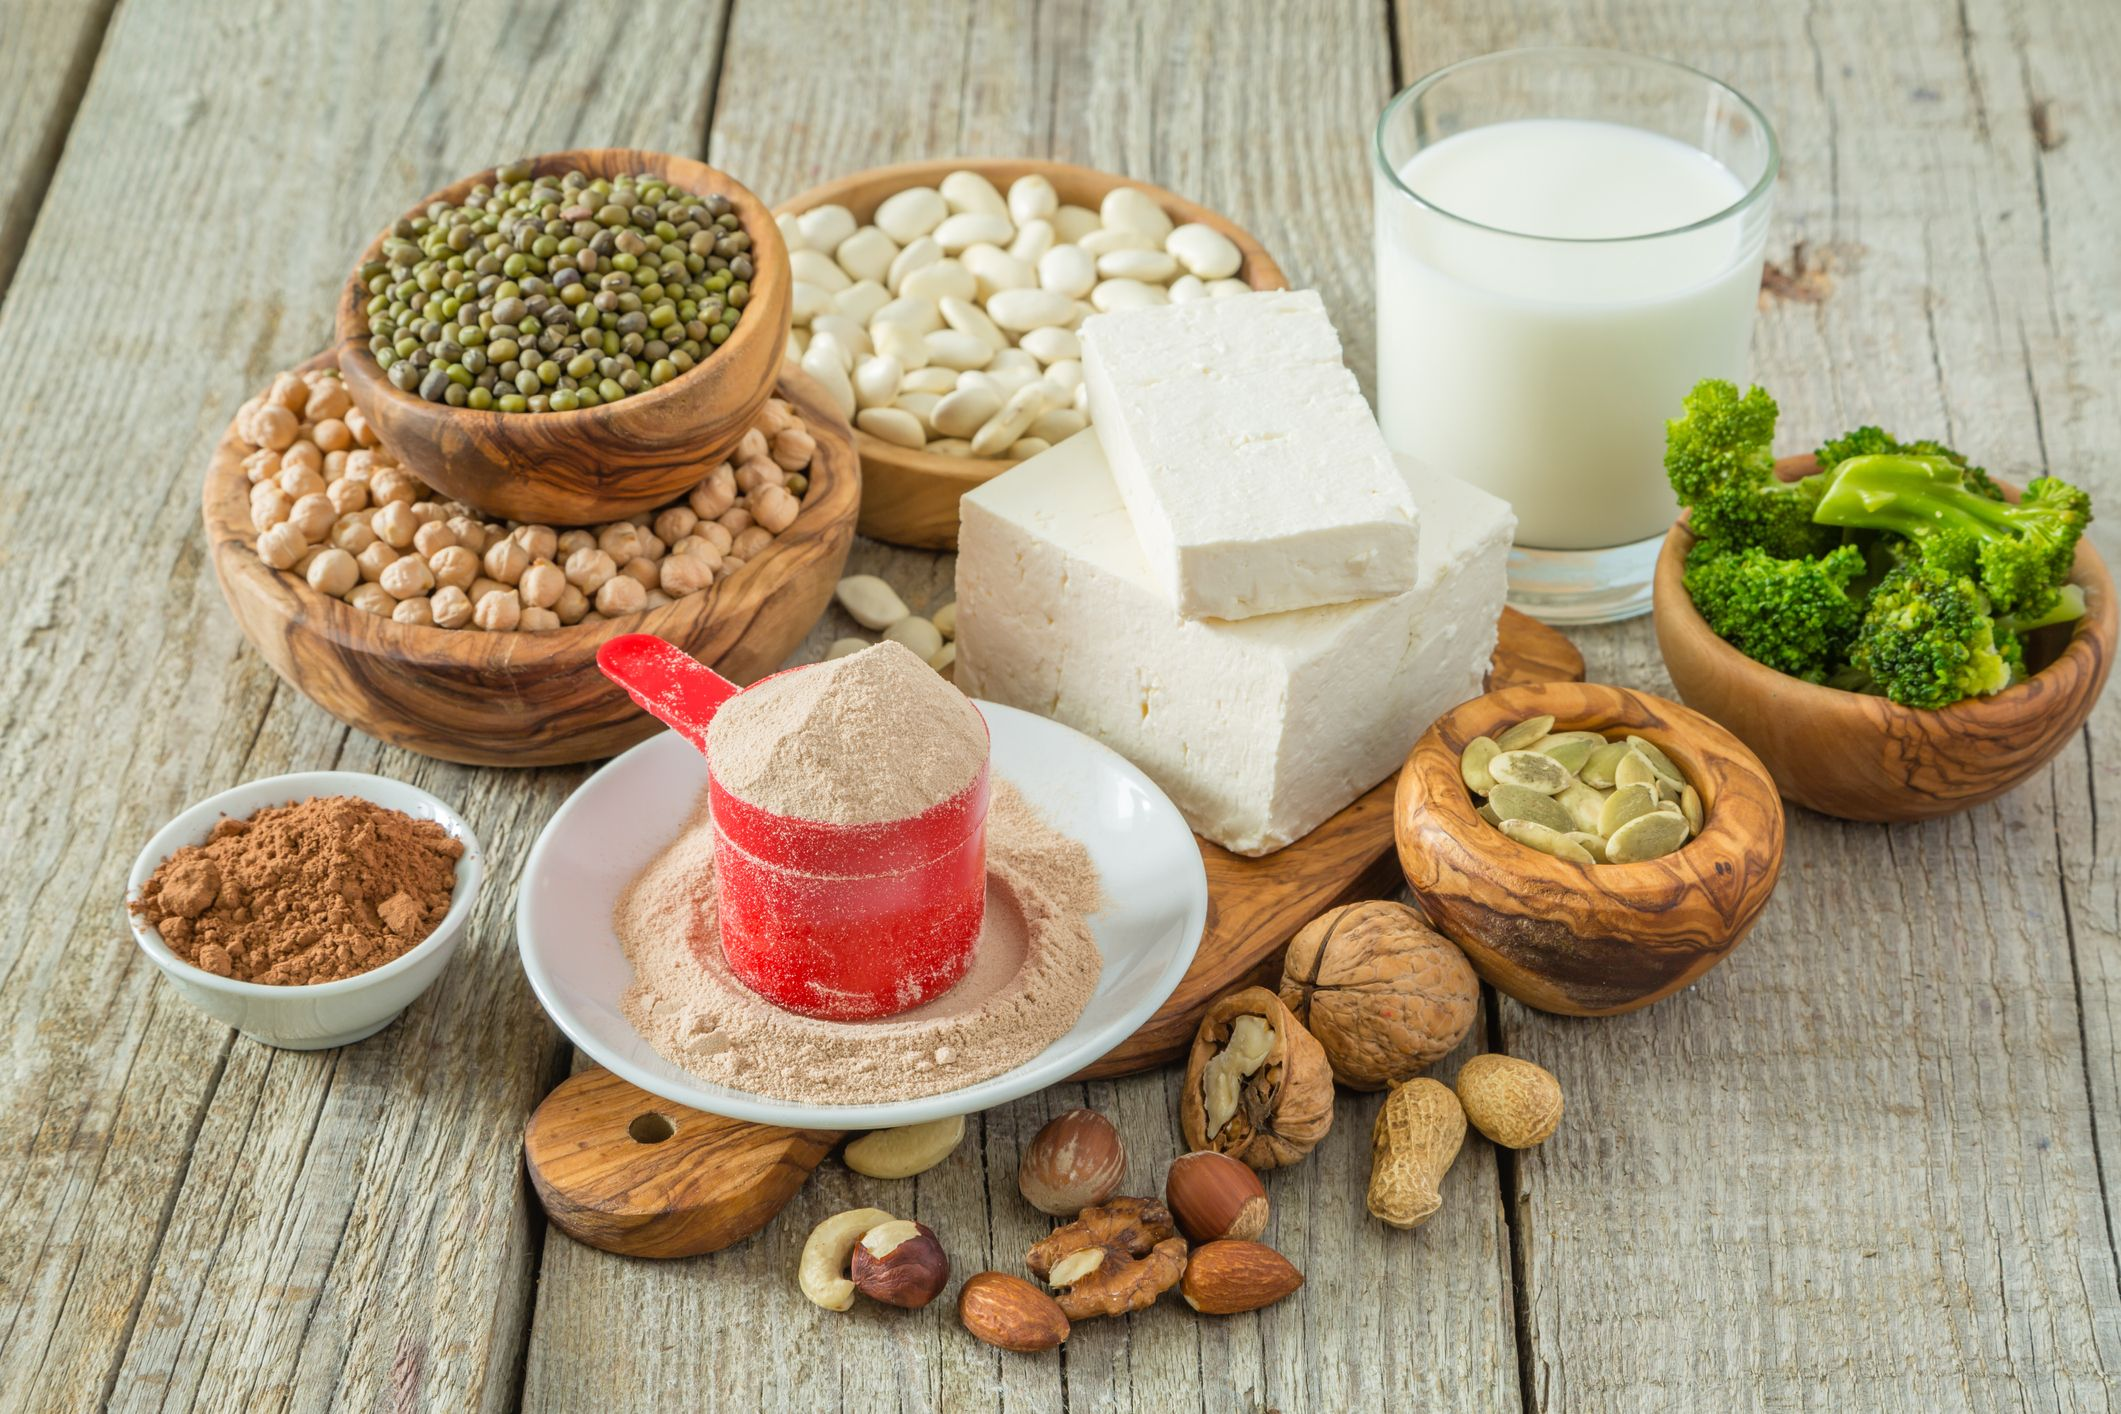 7 Sources of Protein You Need to Be Eating More Of